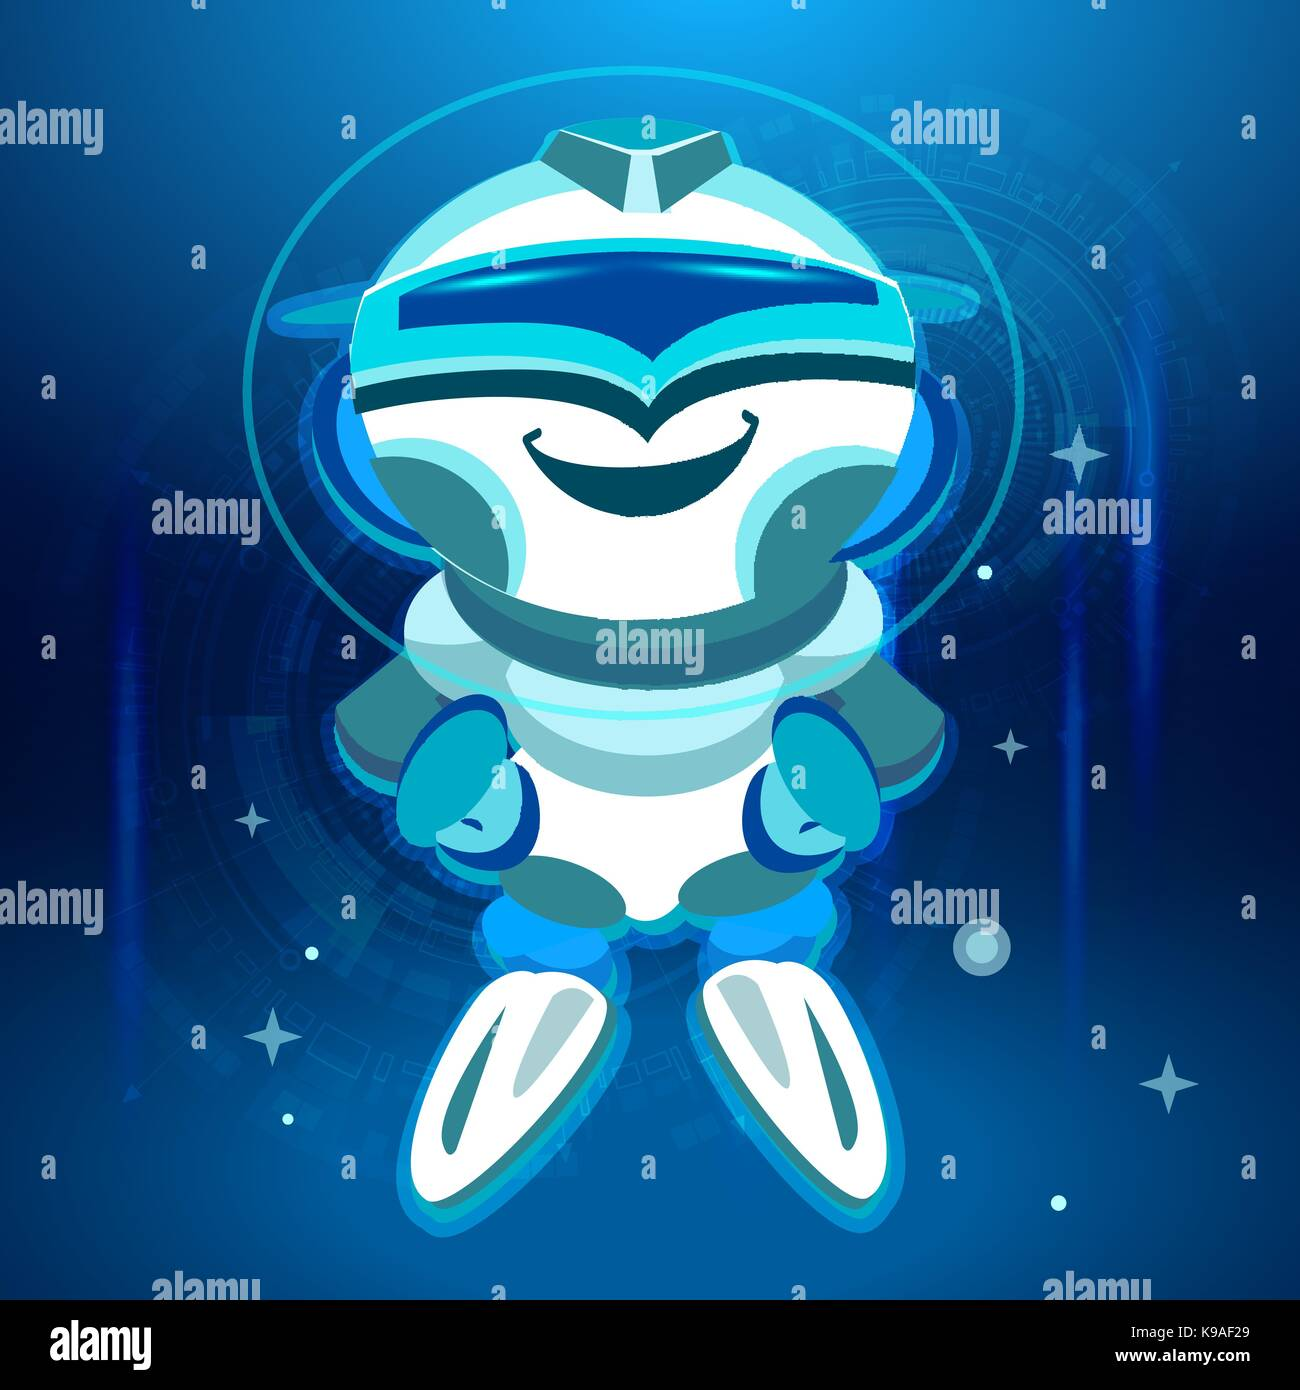 Bot. Chatbot. Robot in Vector - Stock Image